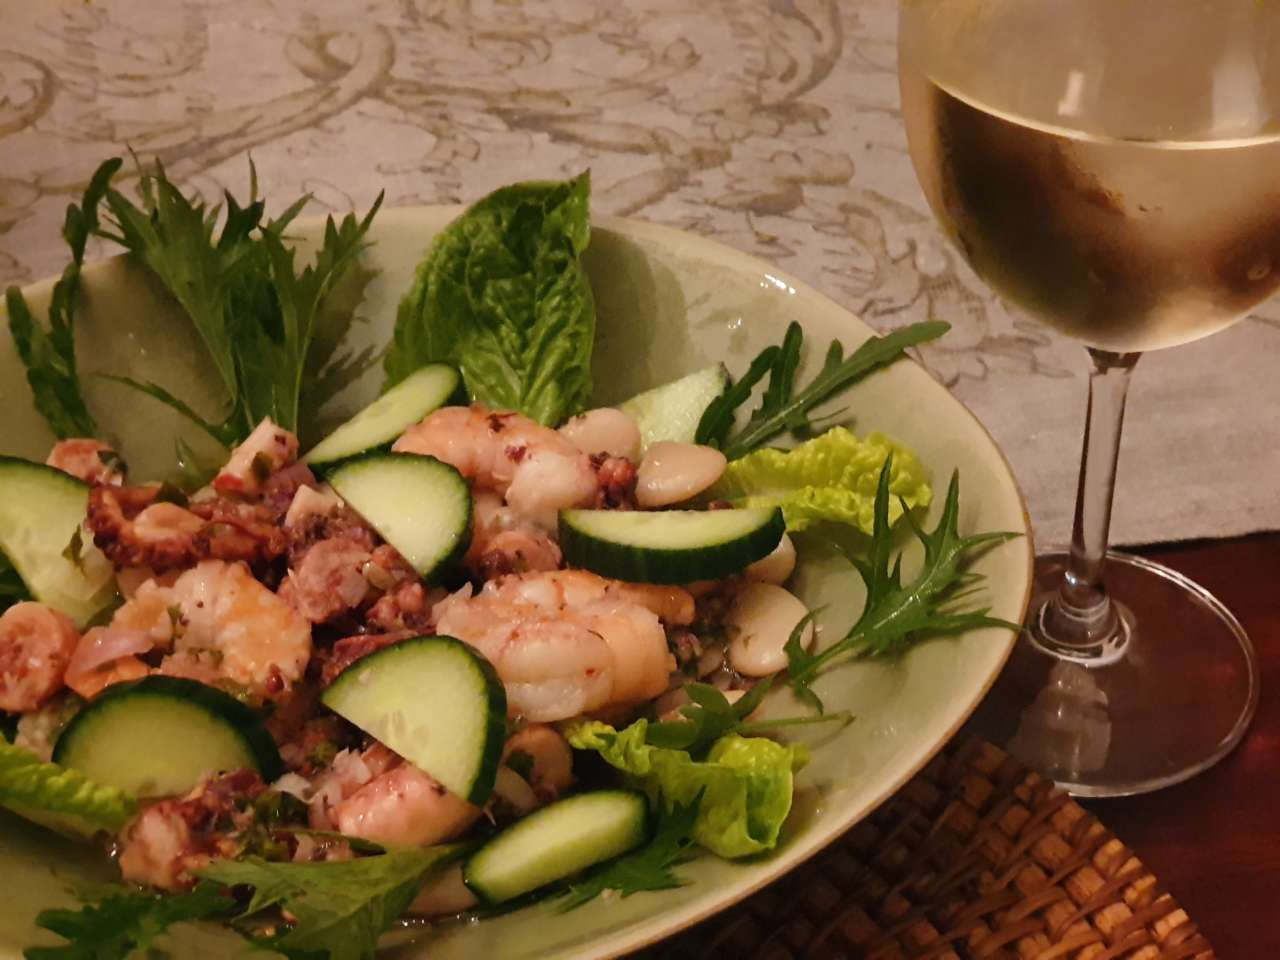 Octopus and Prawn Salad